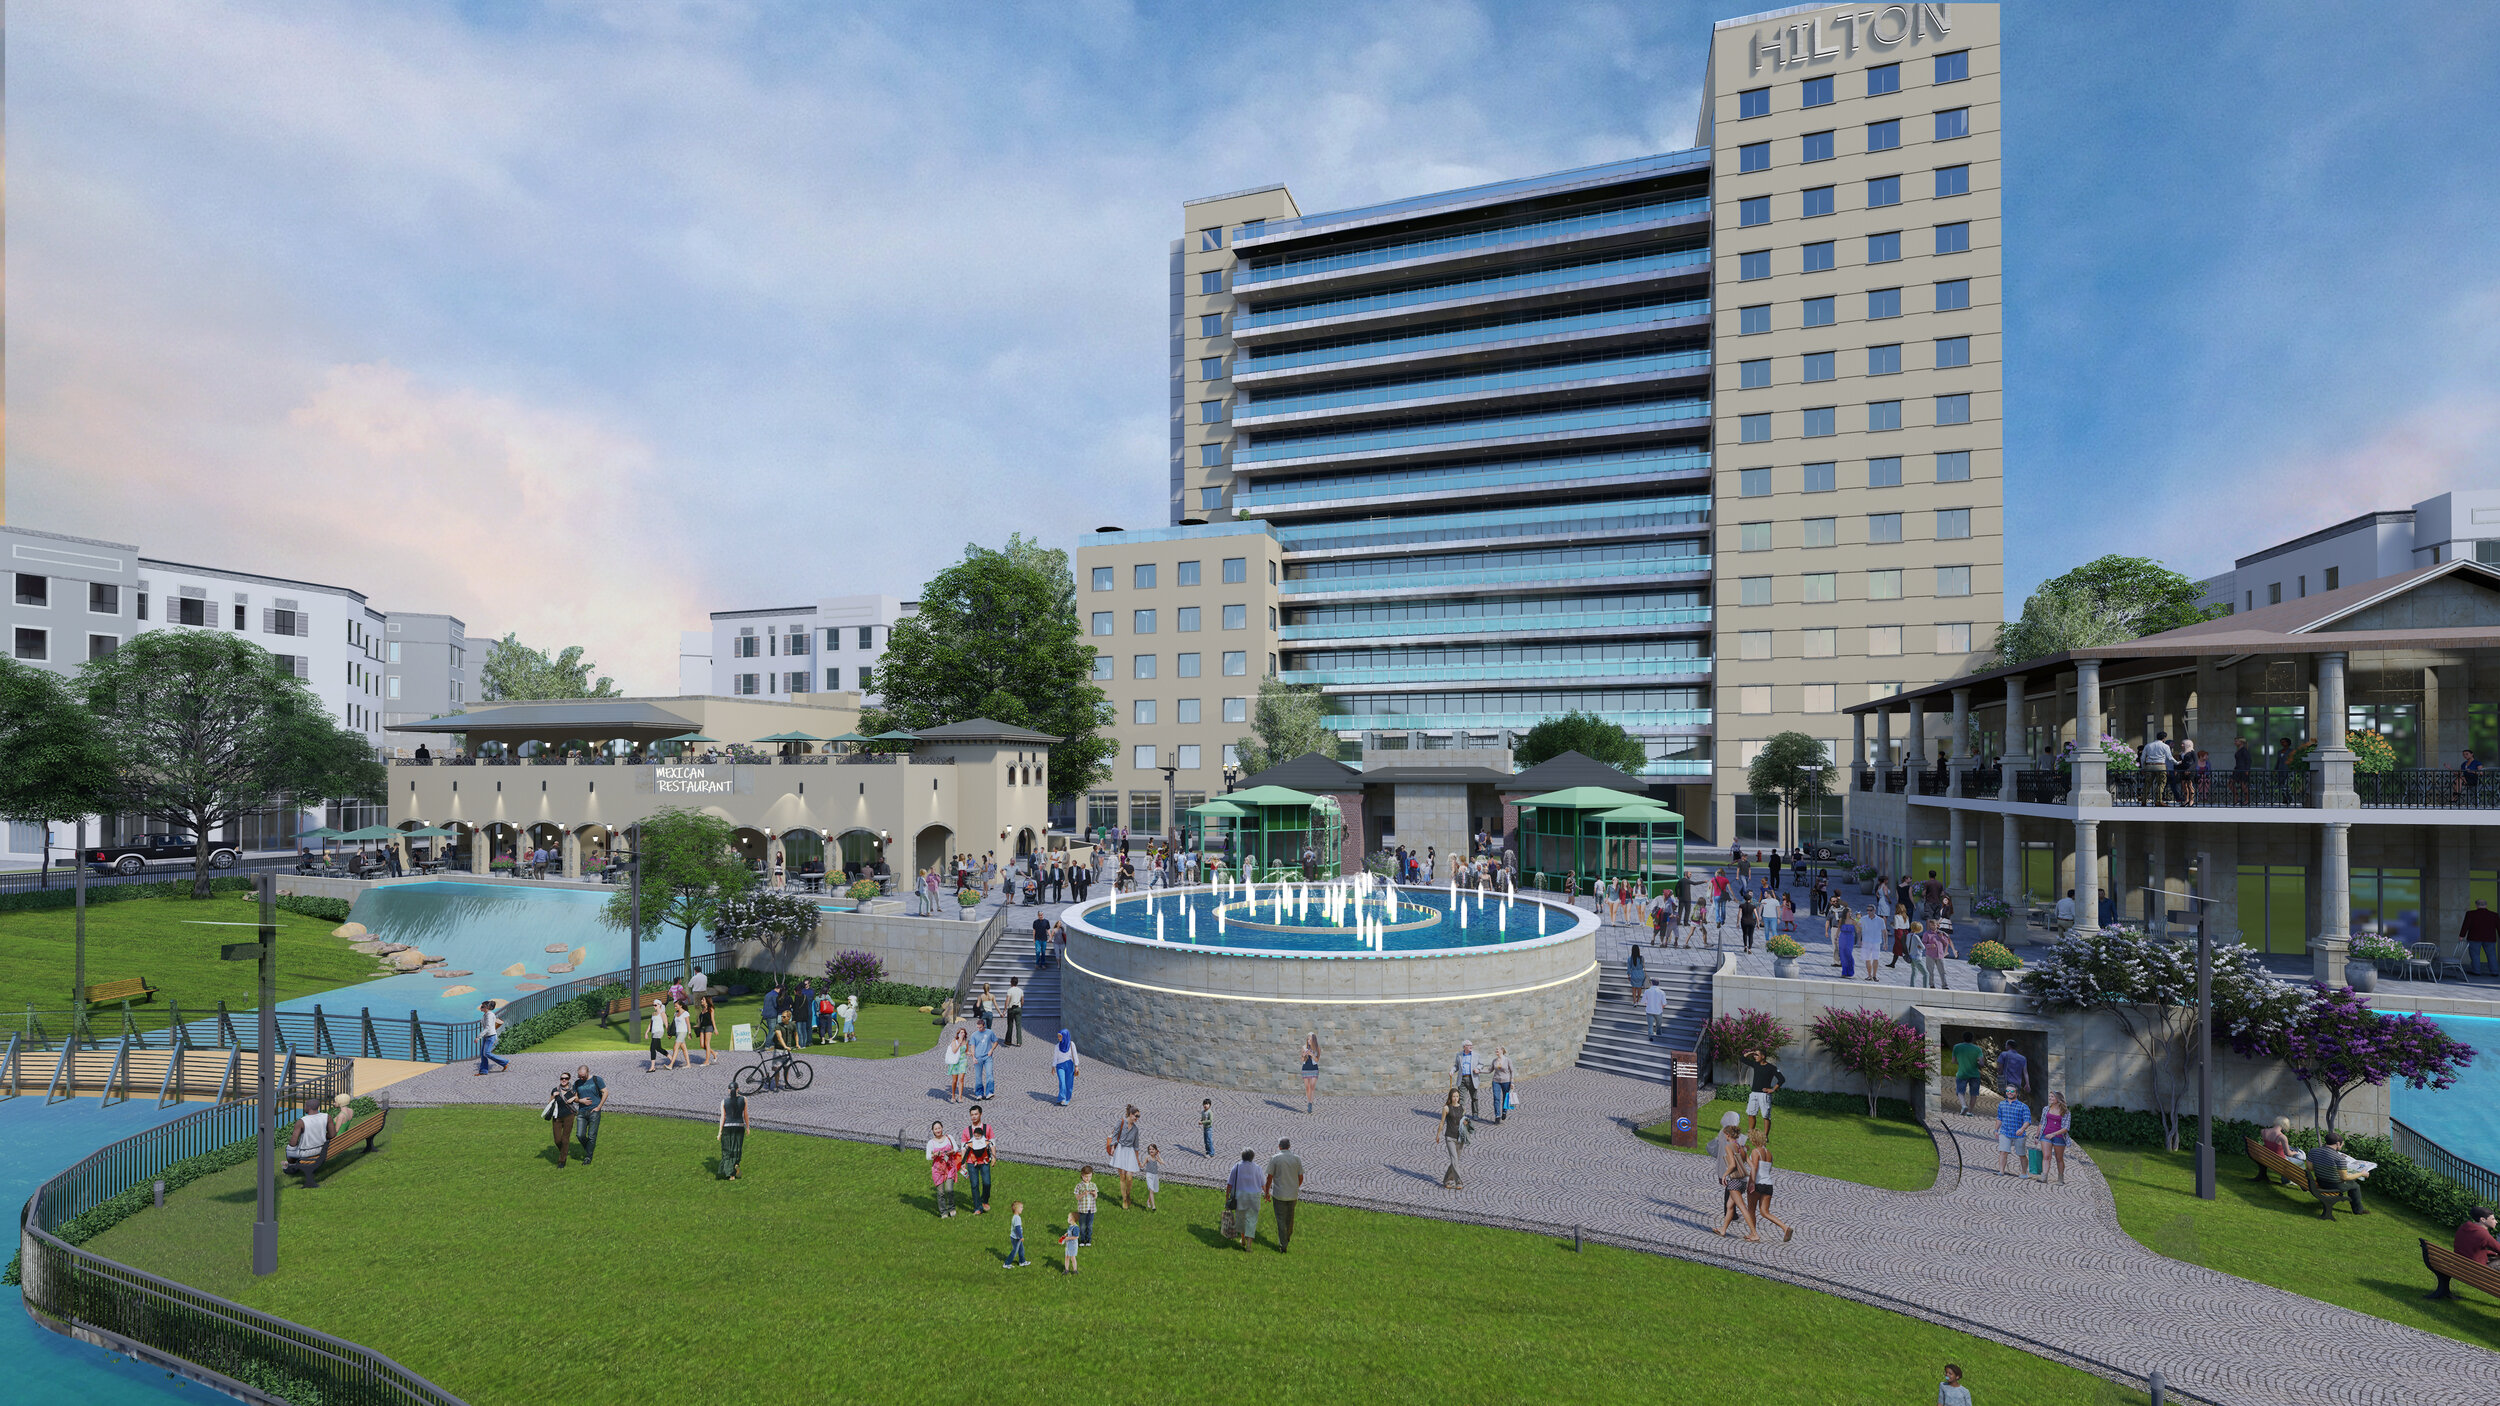 Hospitality - The development plan includes a hotel with approximately 40,000 square feet of event space along with 200 guest rooms. There will also be 40,000 square feet designated to various restaurants.